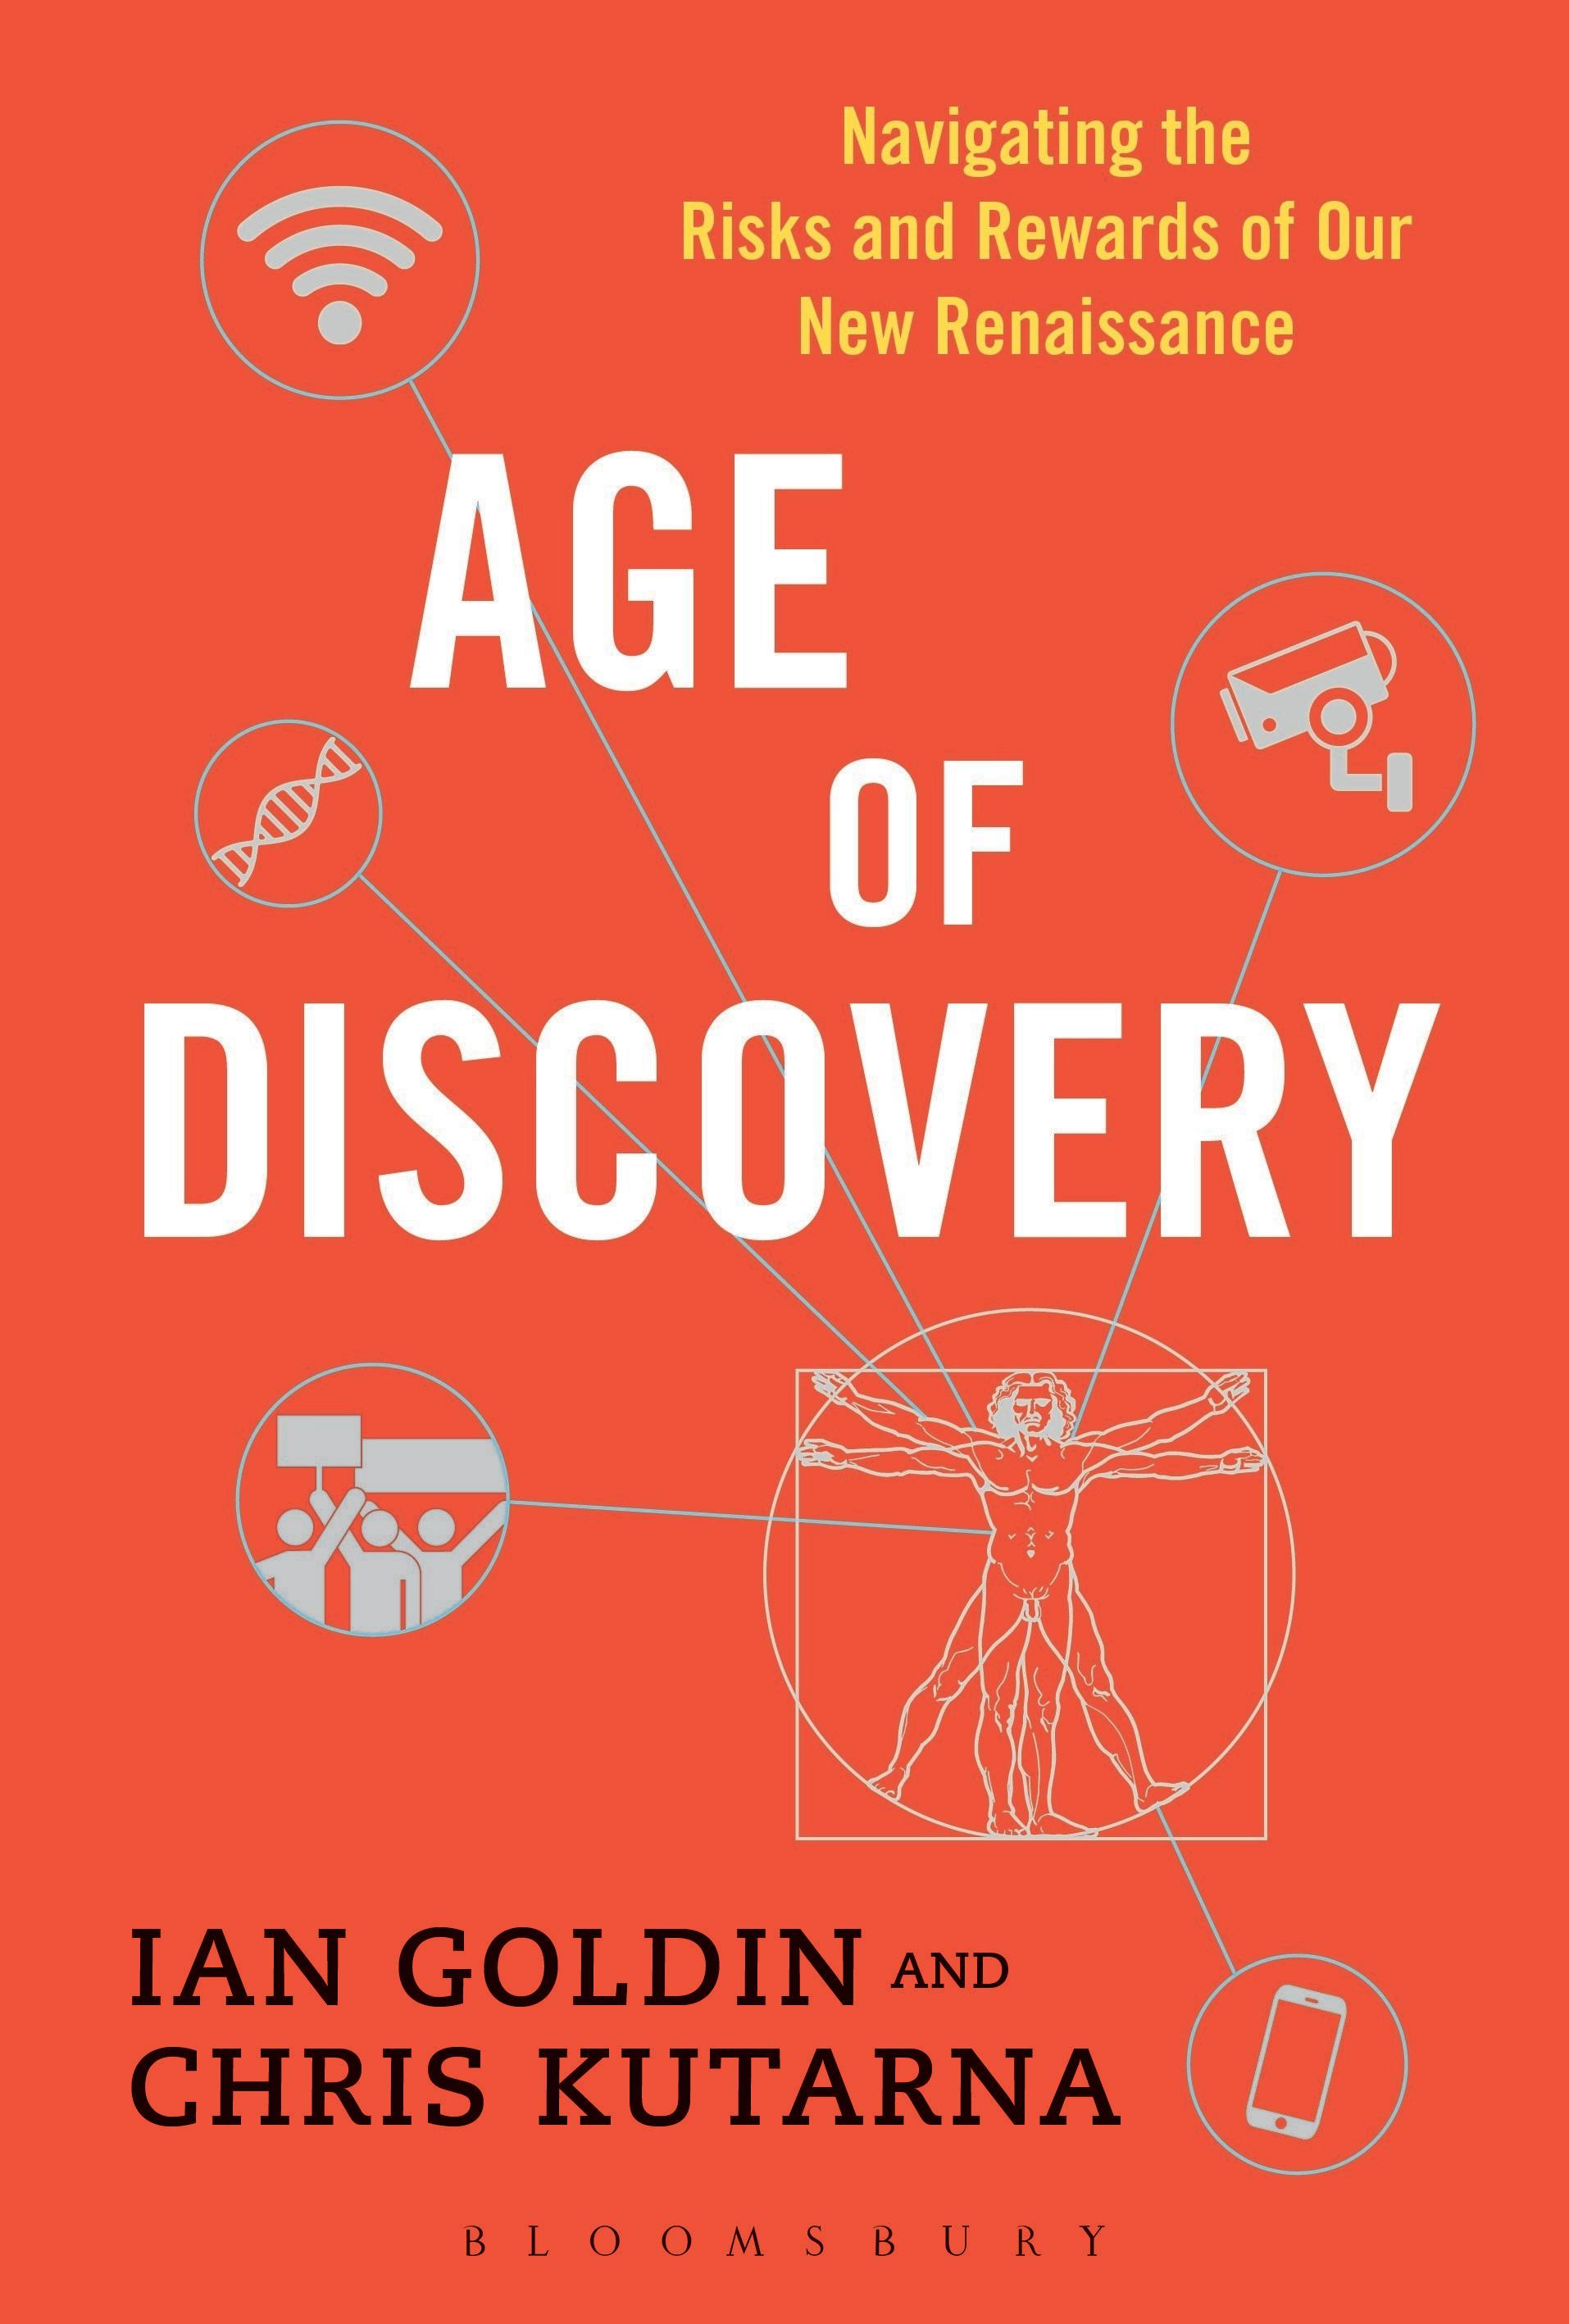 Age of Discovery by Ian Goldin and Chris Kutarna